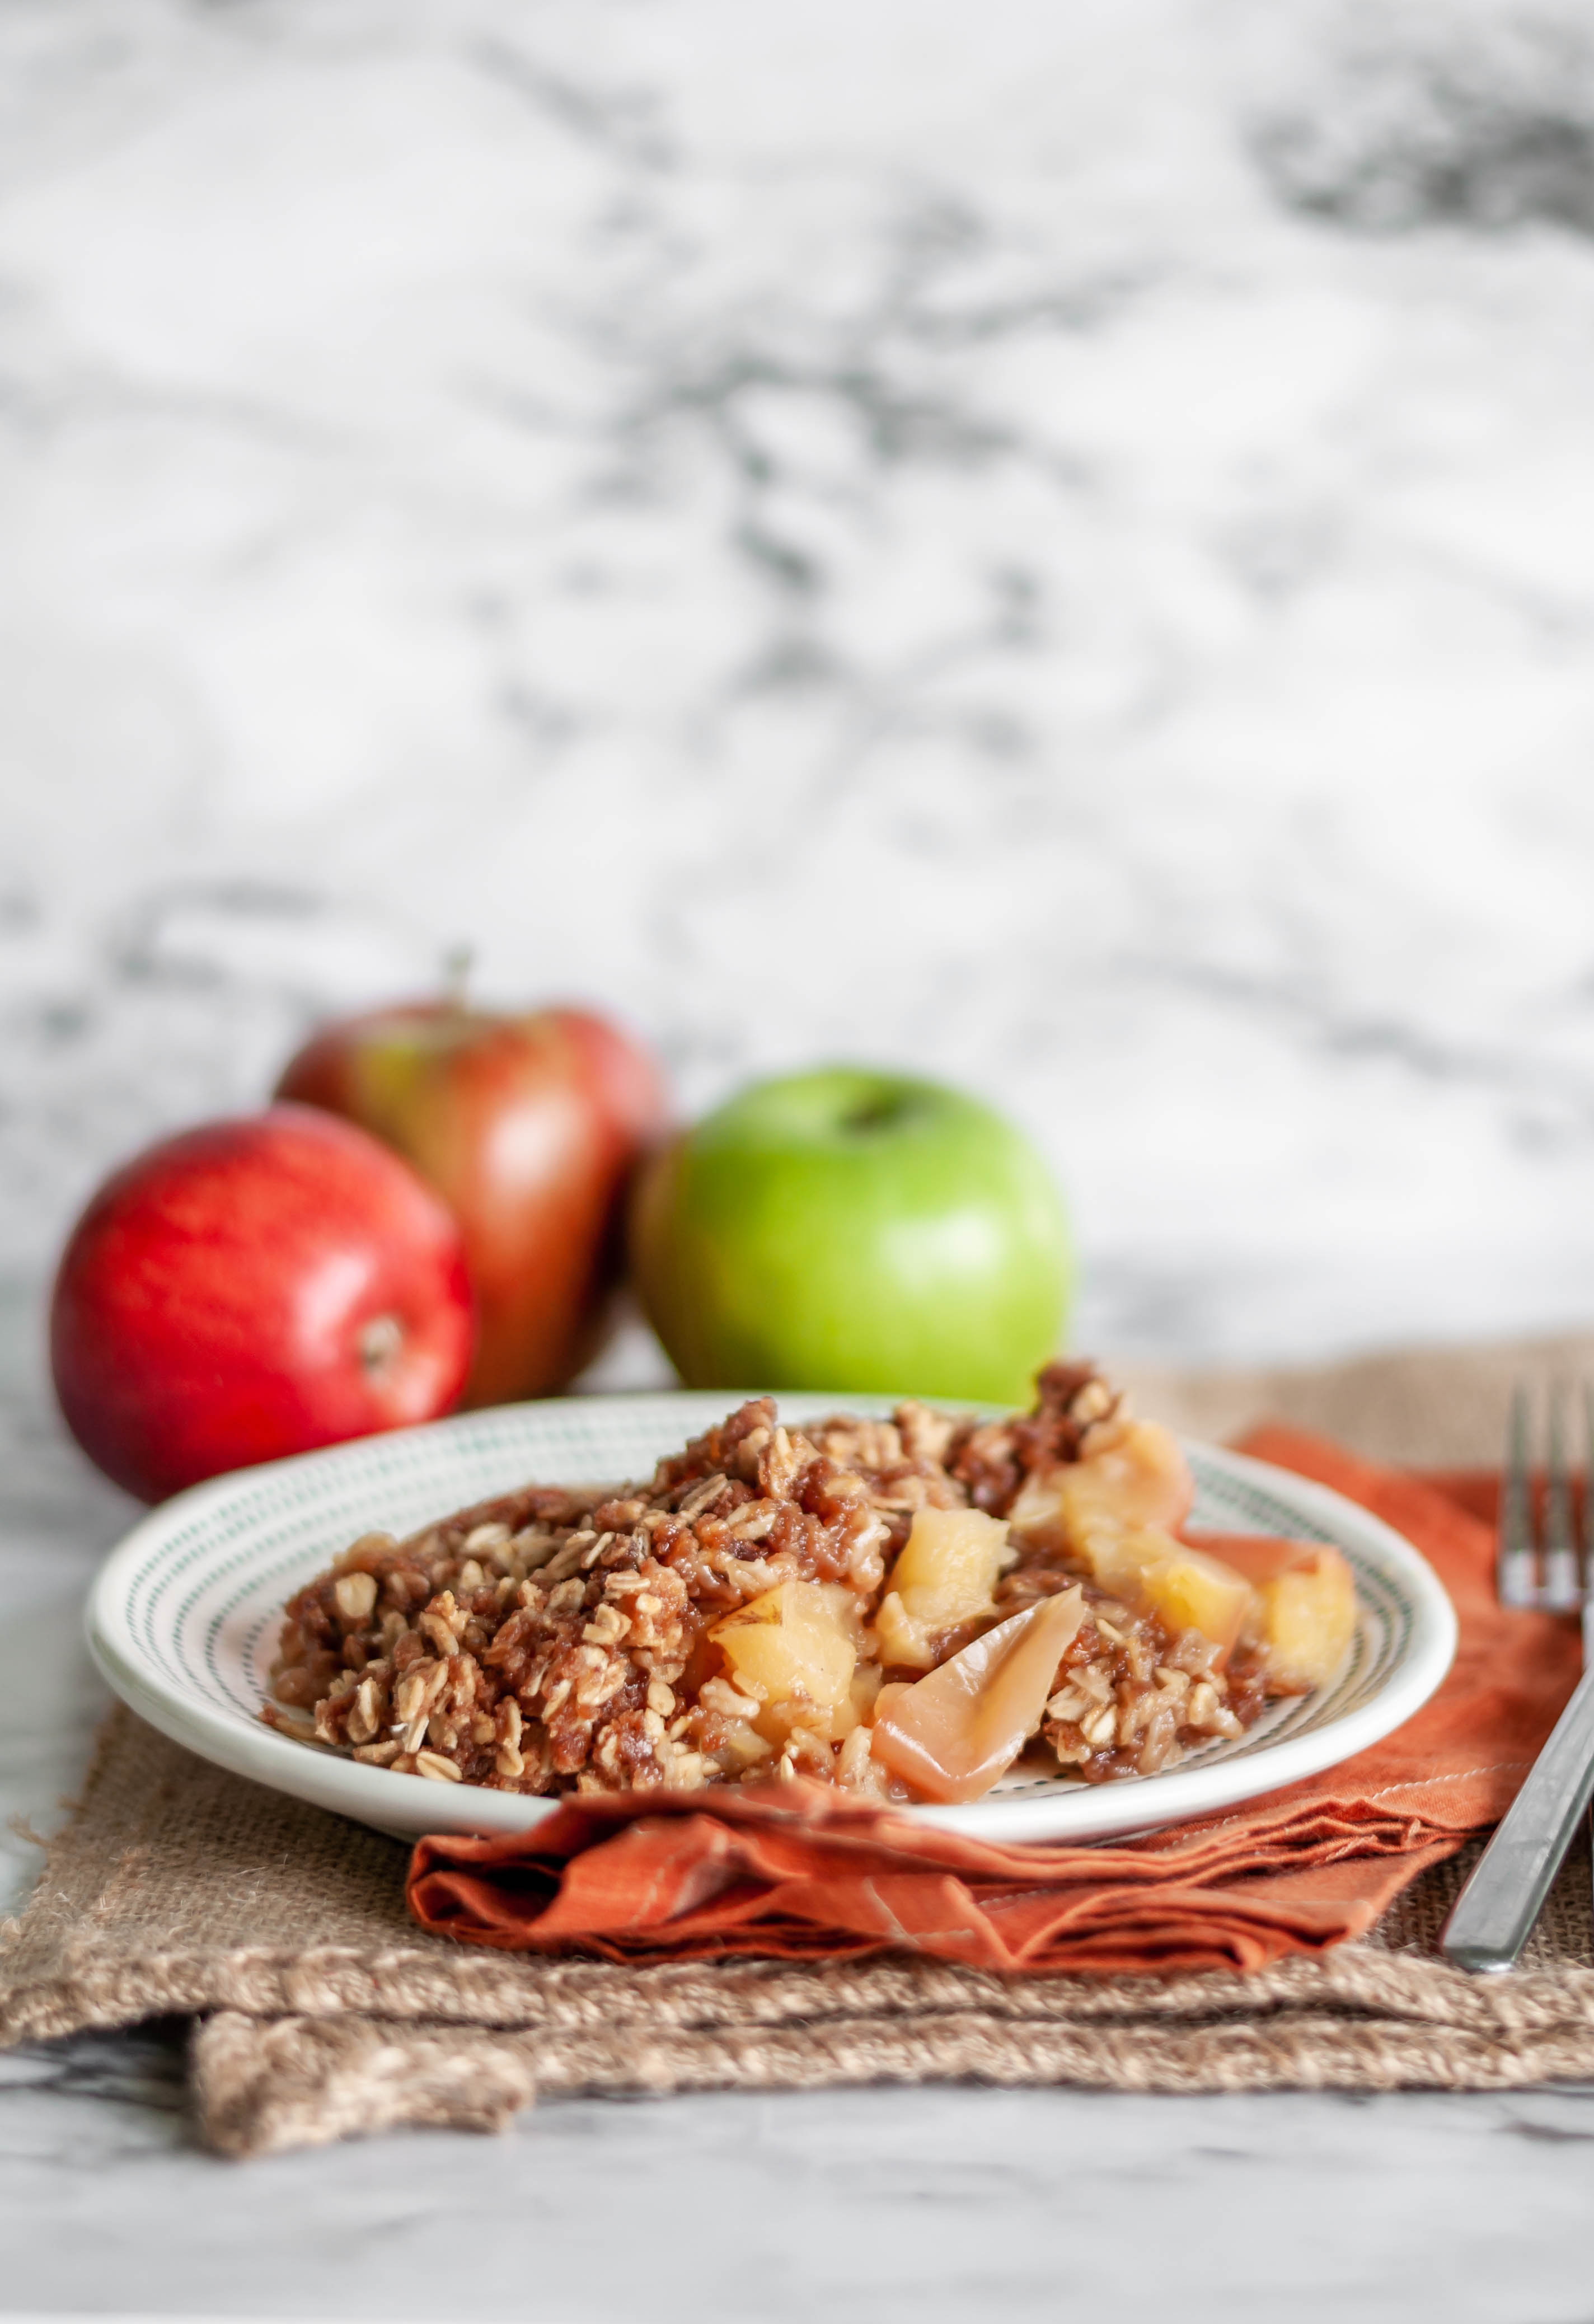 Instant Pot Apple Crisp is the perfect way to celebrate fall. Only 5 minutes to cook in the Instant Pot. Check out my guide to the Best Apples for Baking.